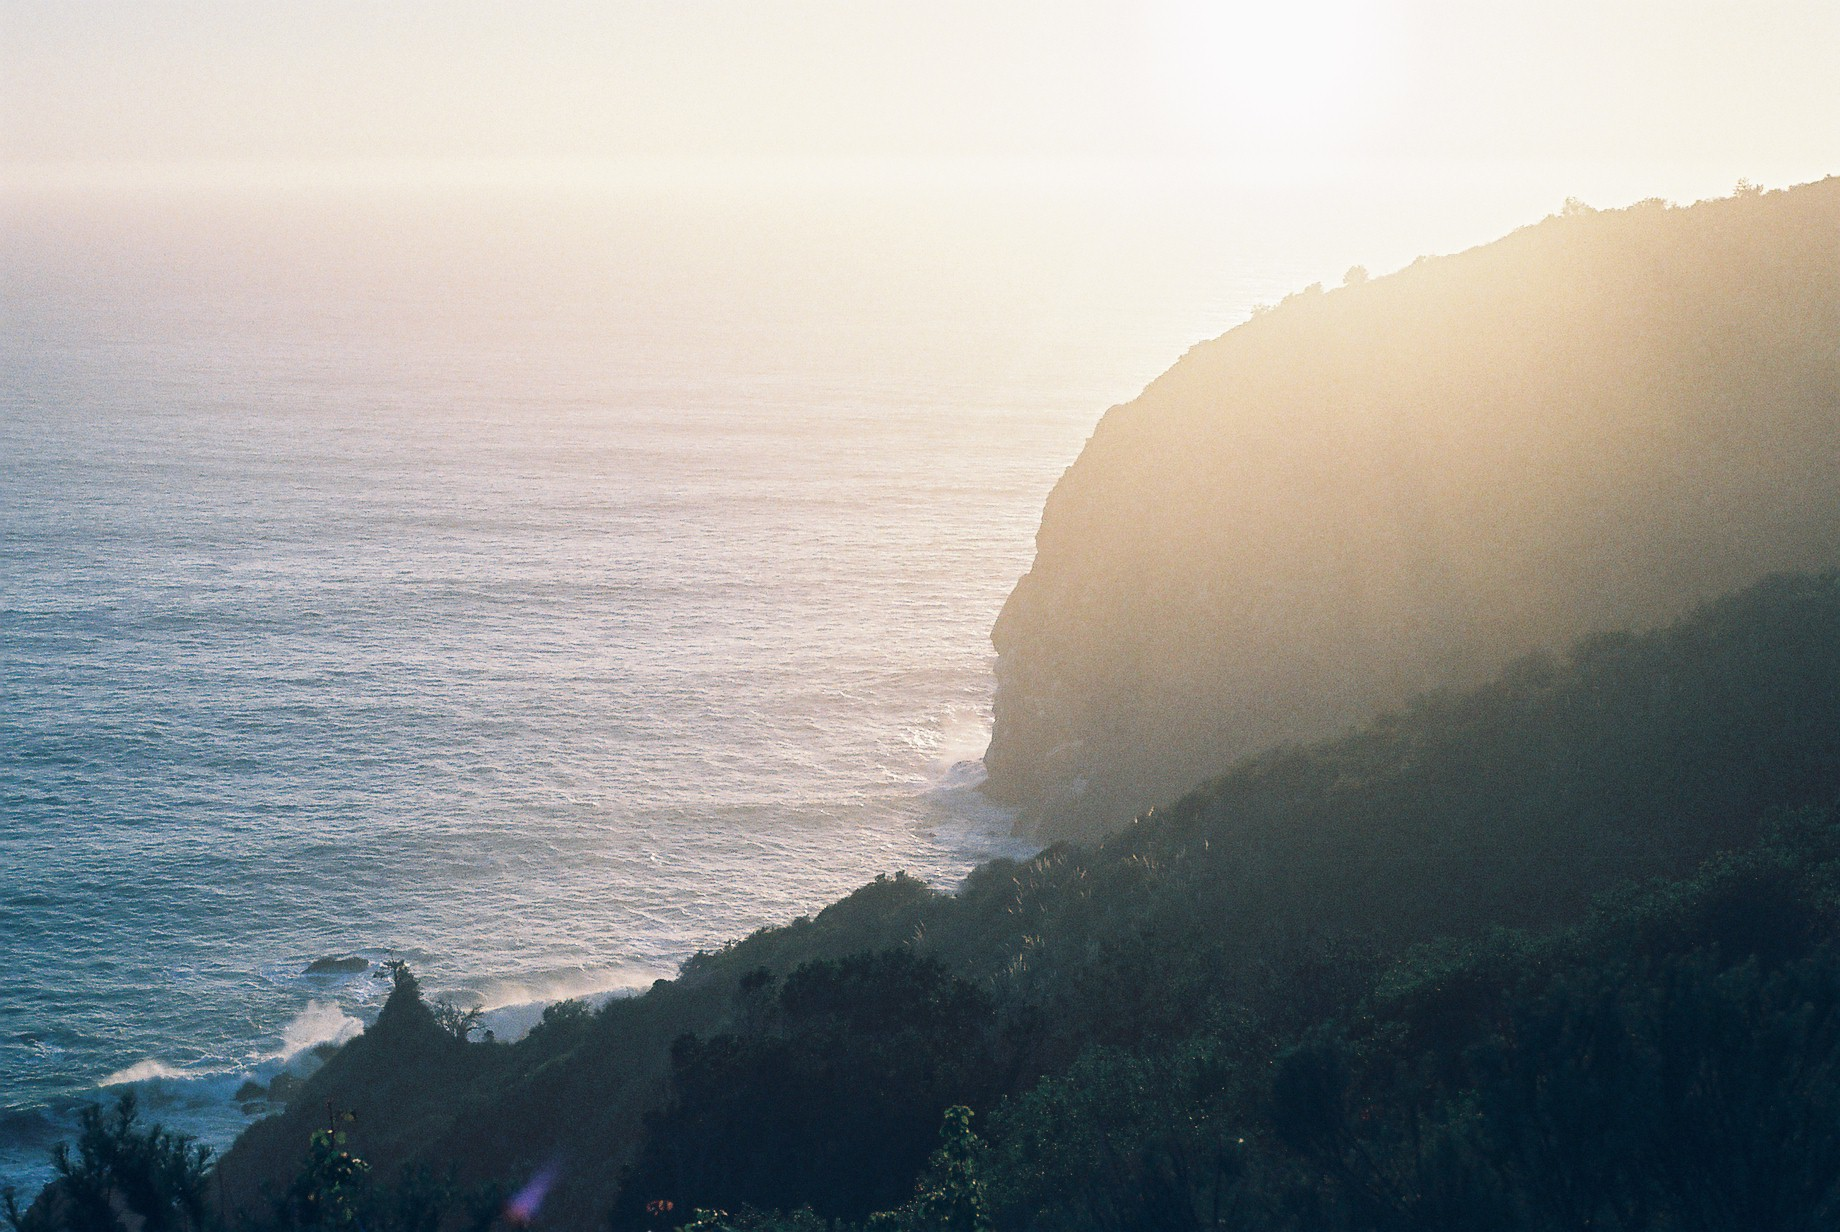 Highway 1 Sunset Analogue Travel Journal